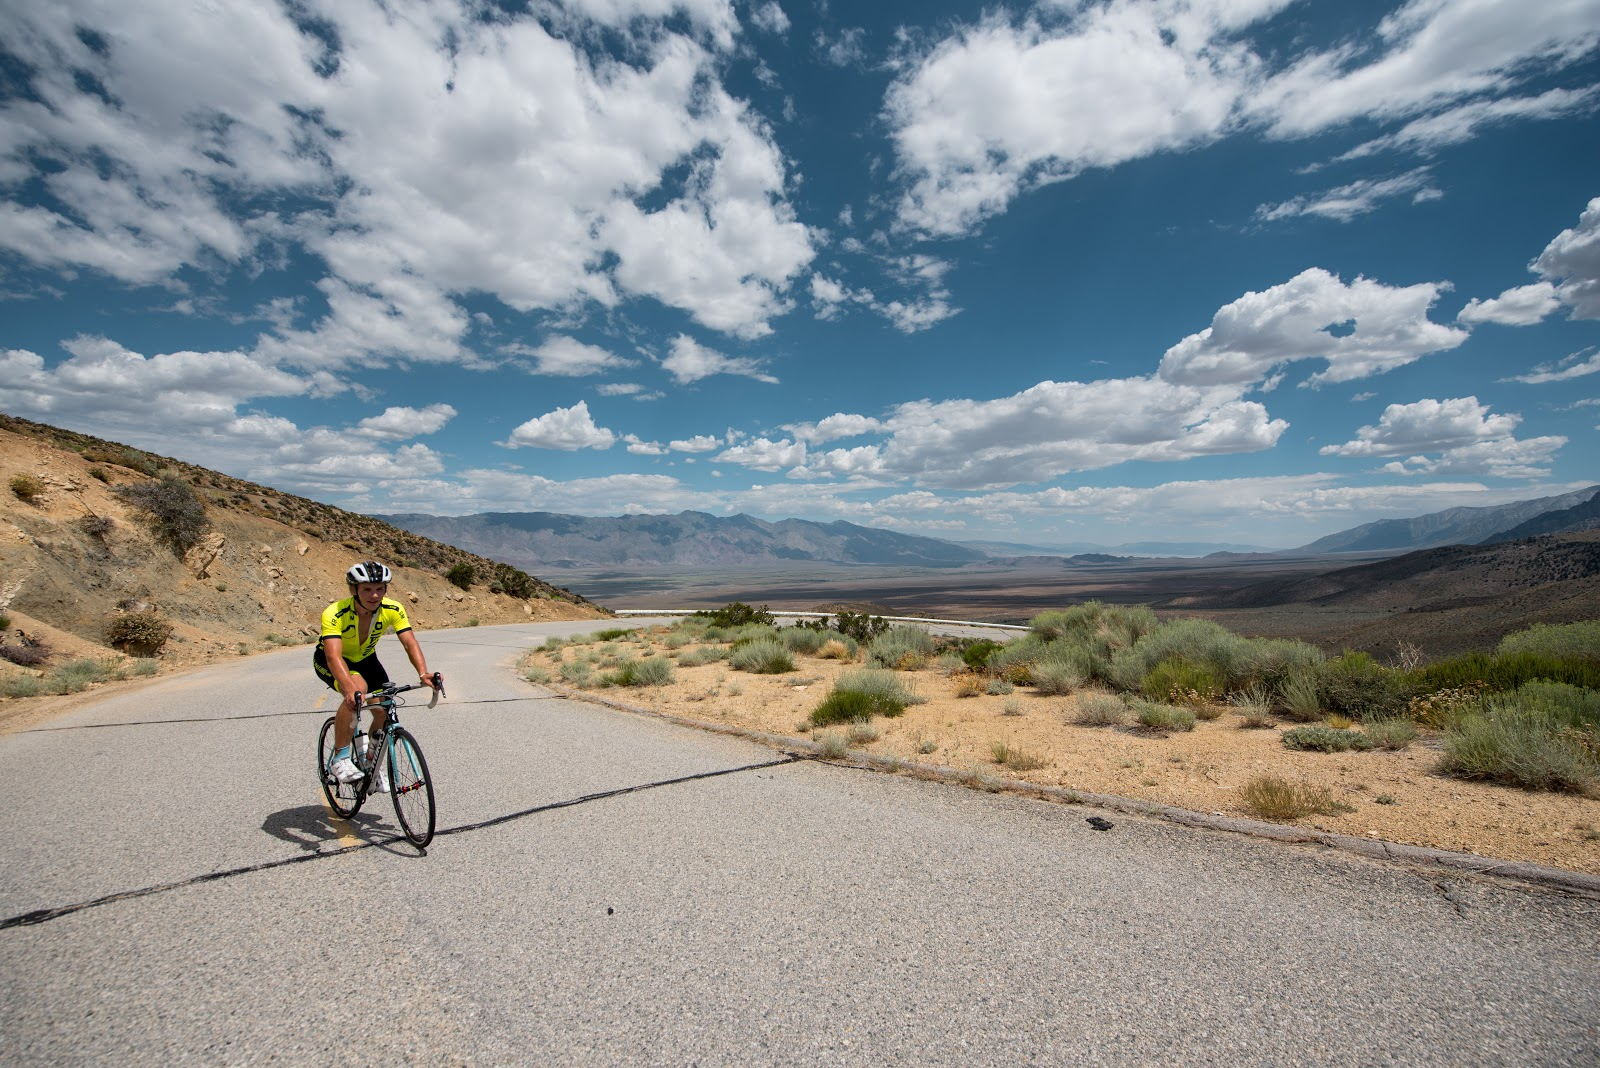 Cyclist nearing the top of Onion Valley Road